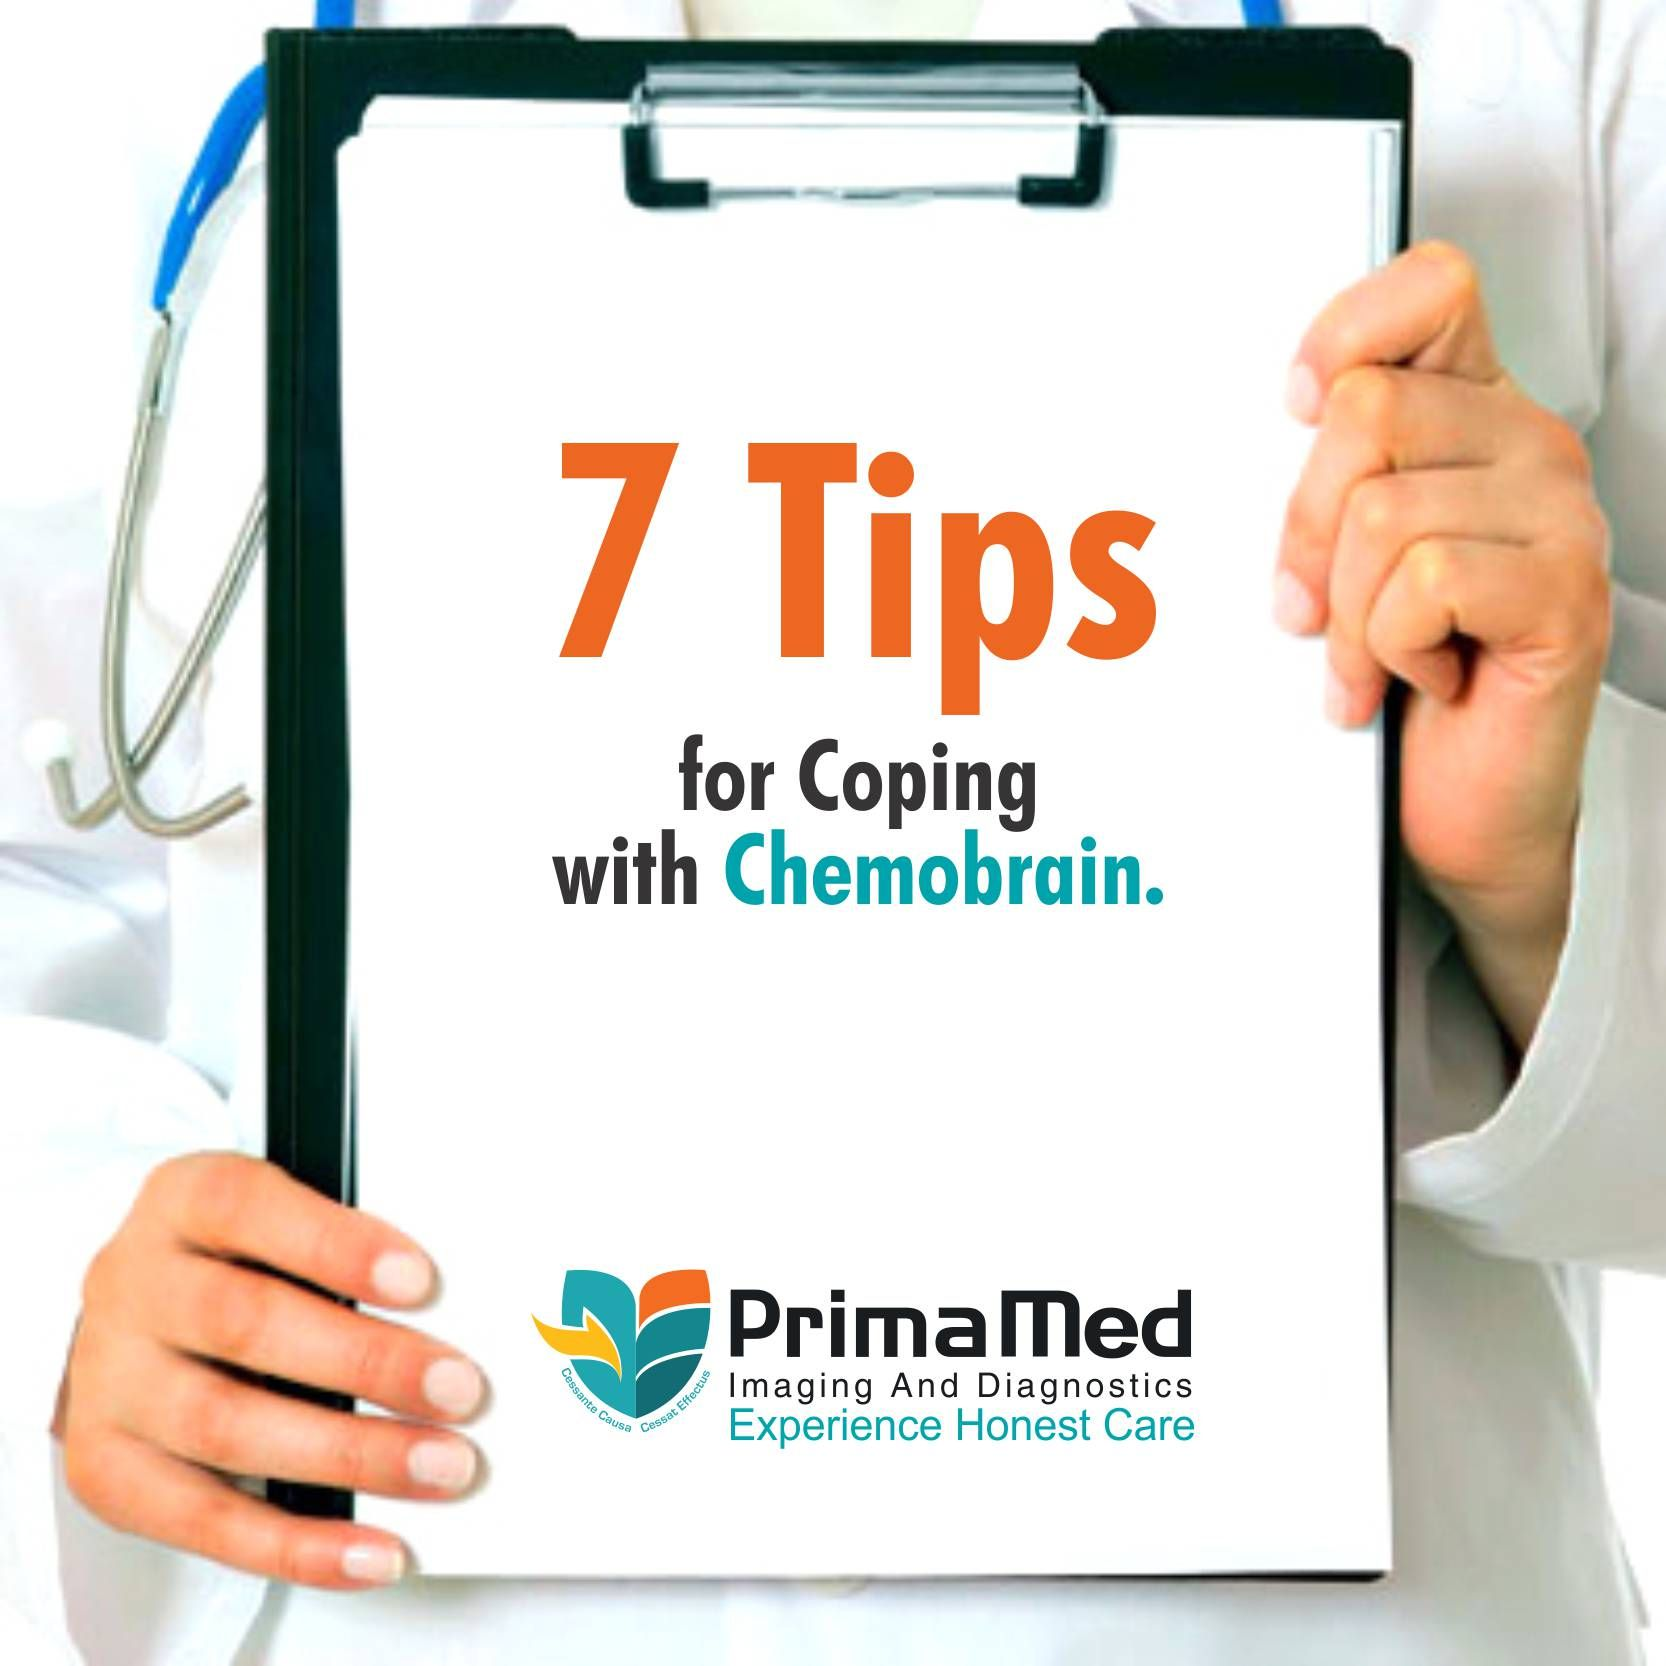 With no perfect answer for #chemobrain, the following suggestions may help you to function better in spite of it, if it's happening to you: http://goo.gl/hBmfpM